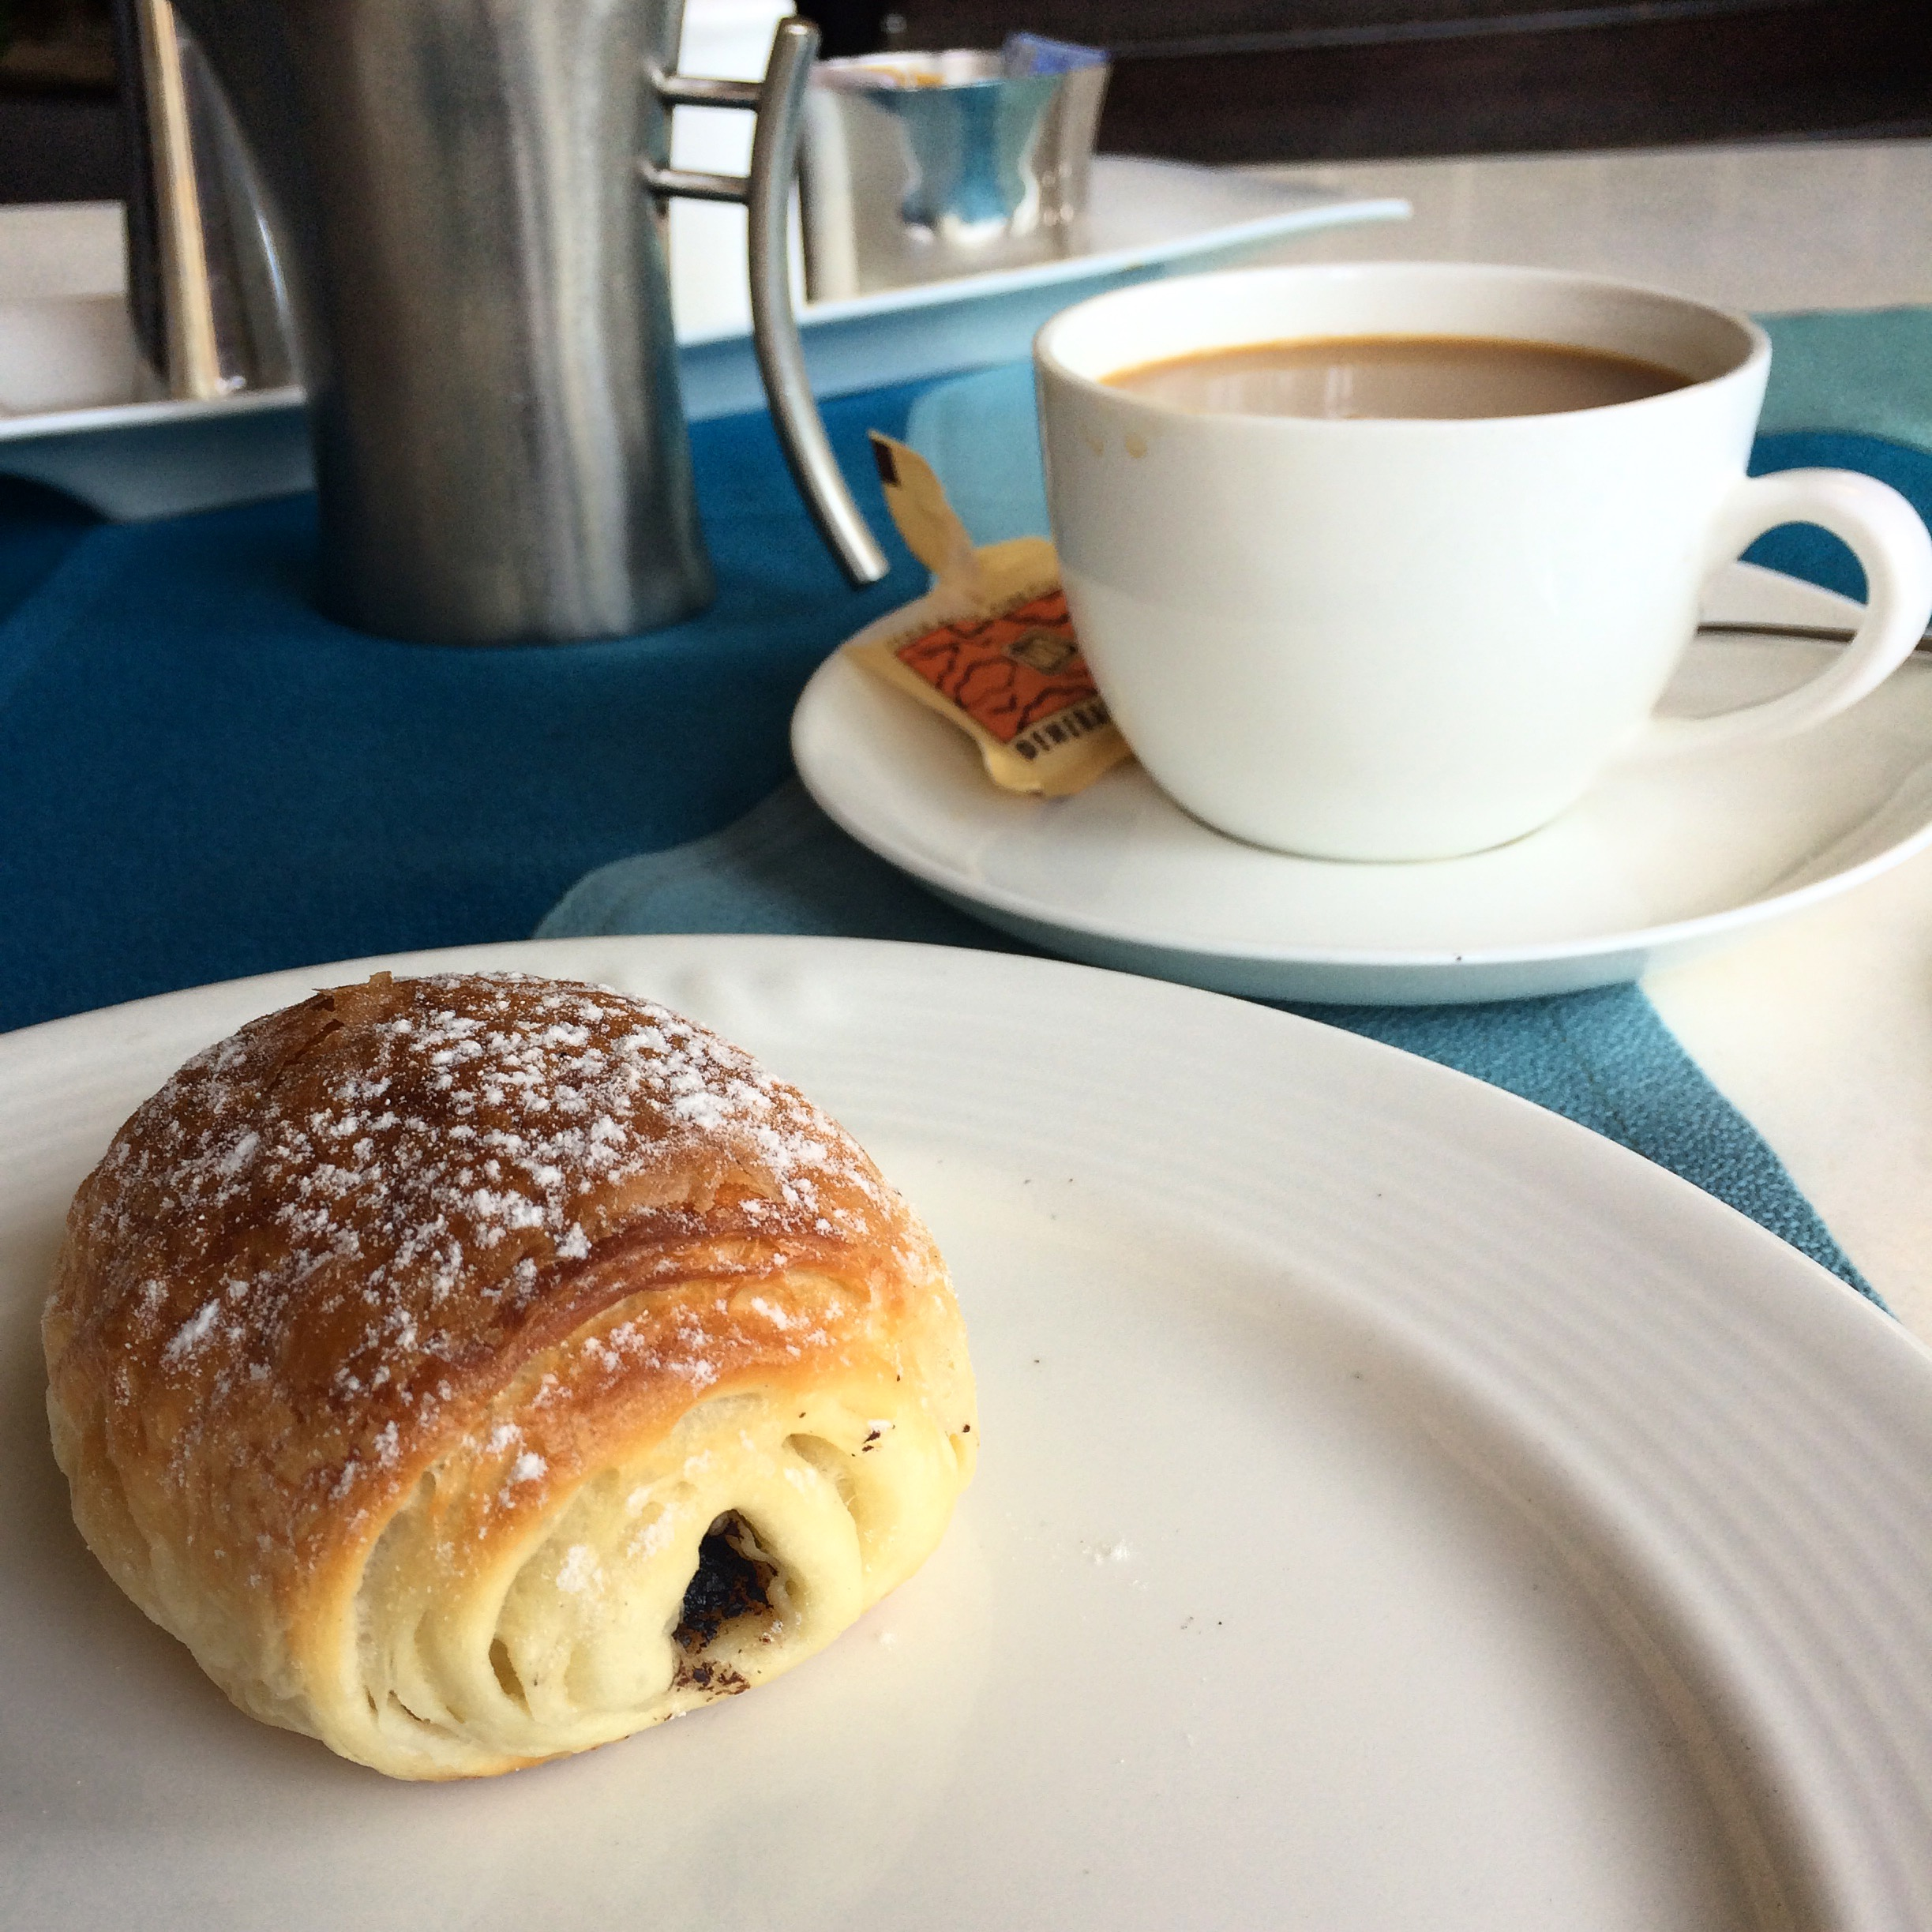 I spent one day entirely by myself -- table for one -- and enjoyed this delicious breakfast of coffee + a chocolate croissant.